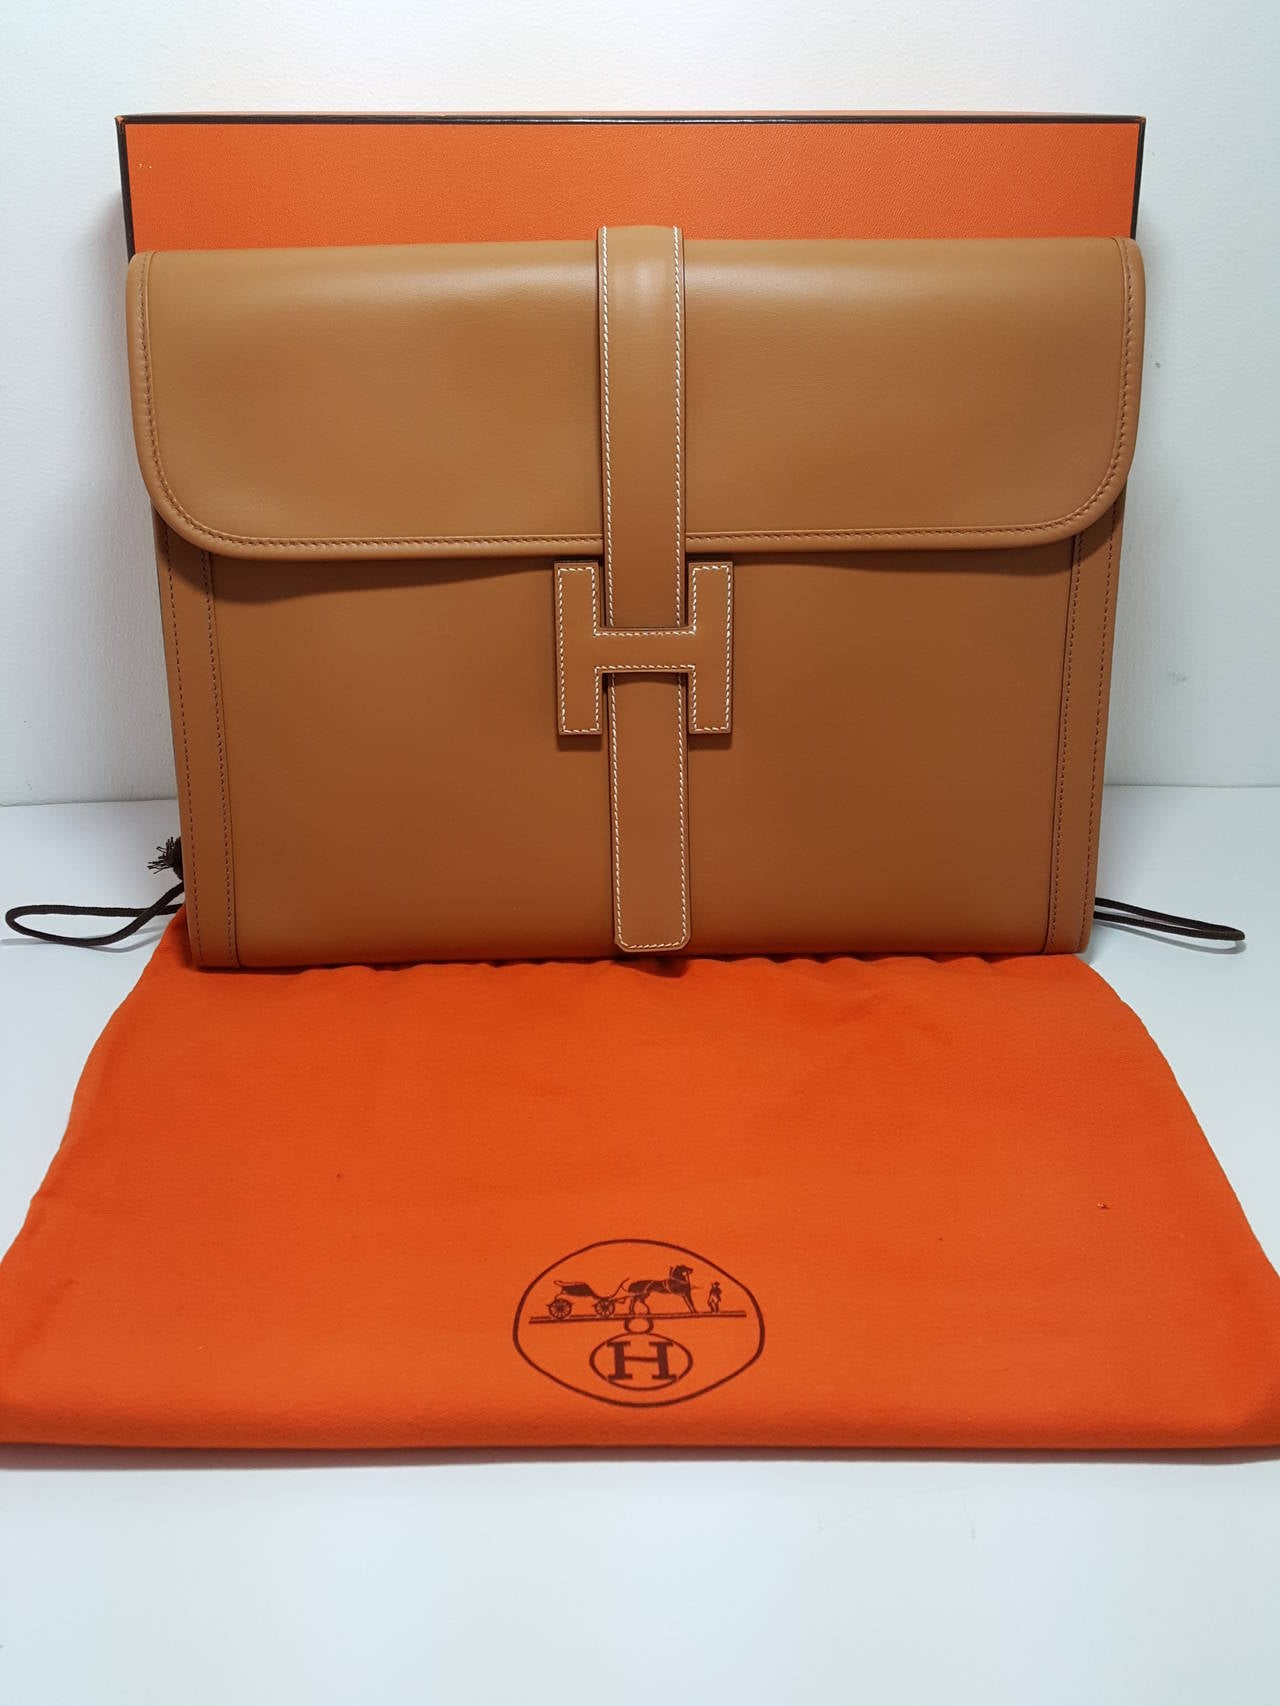 HERMES Large Golden Jige Clutch in perfect Condition. For Sale 1